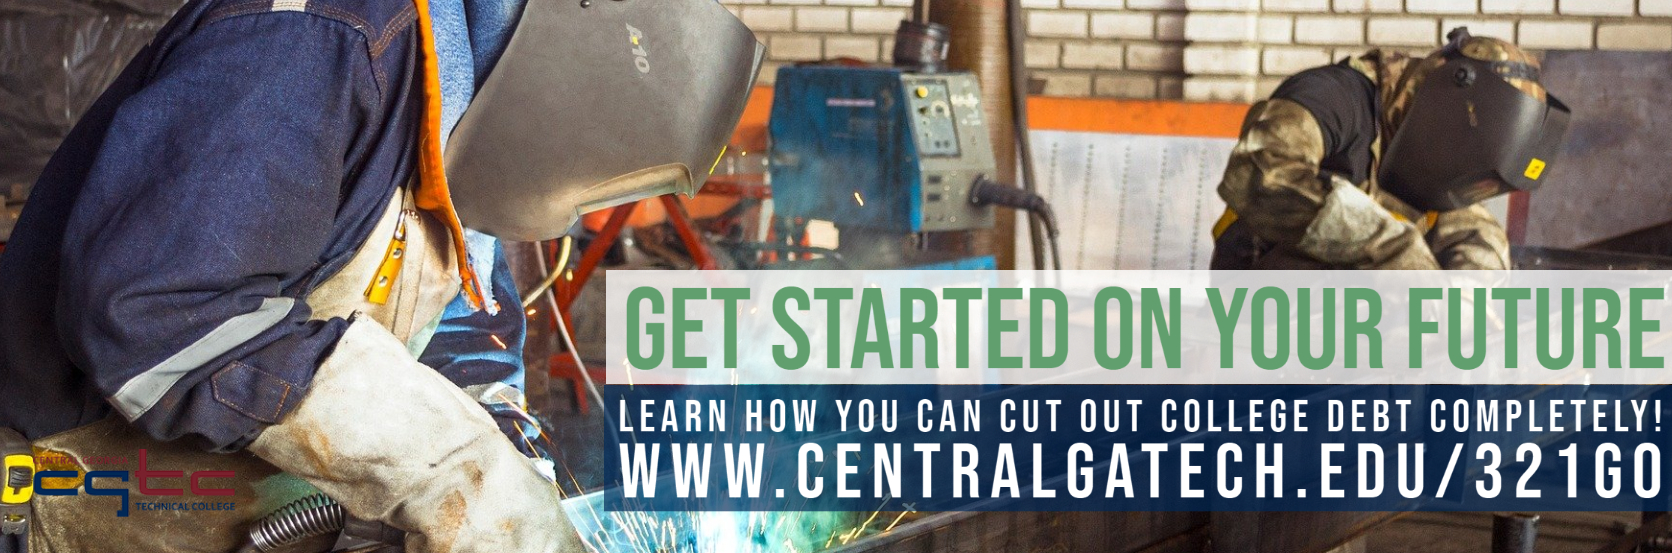 Cut out College debt completely. Click to learn more about 321GO.